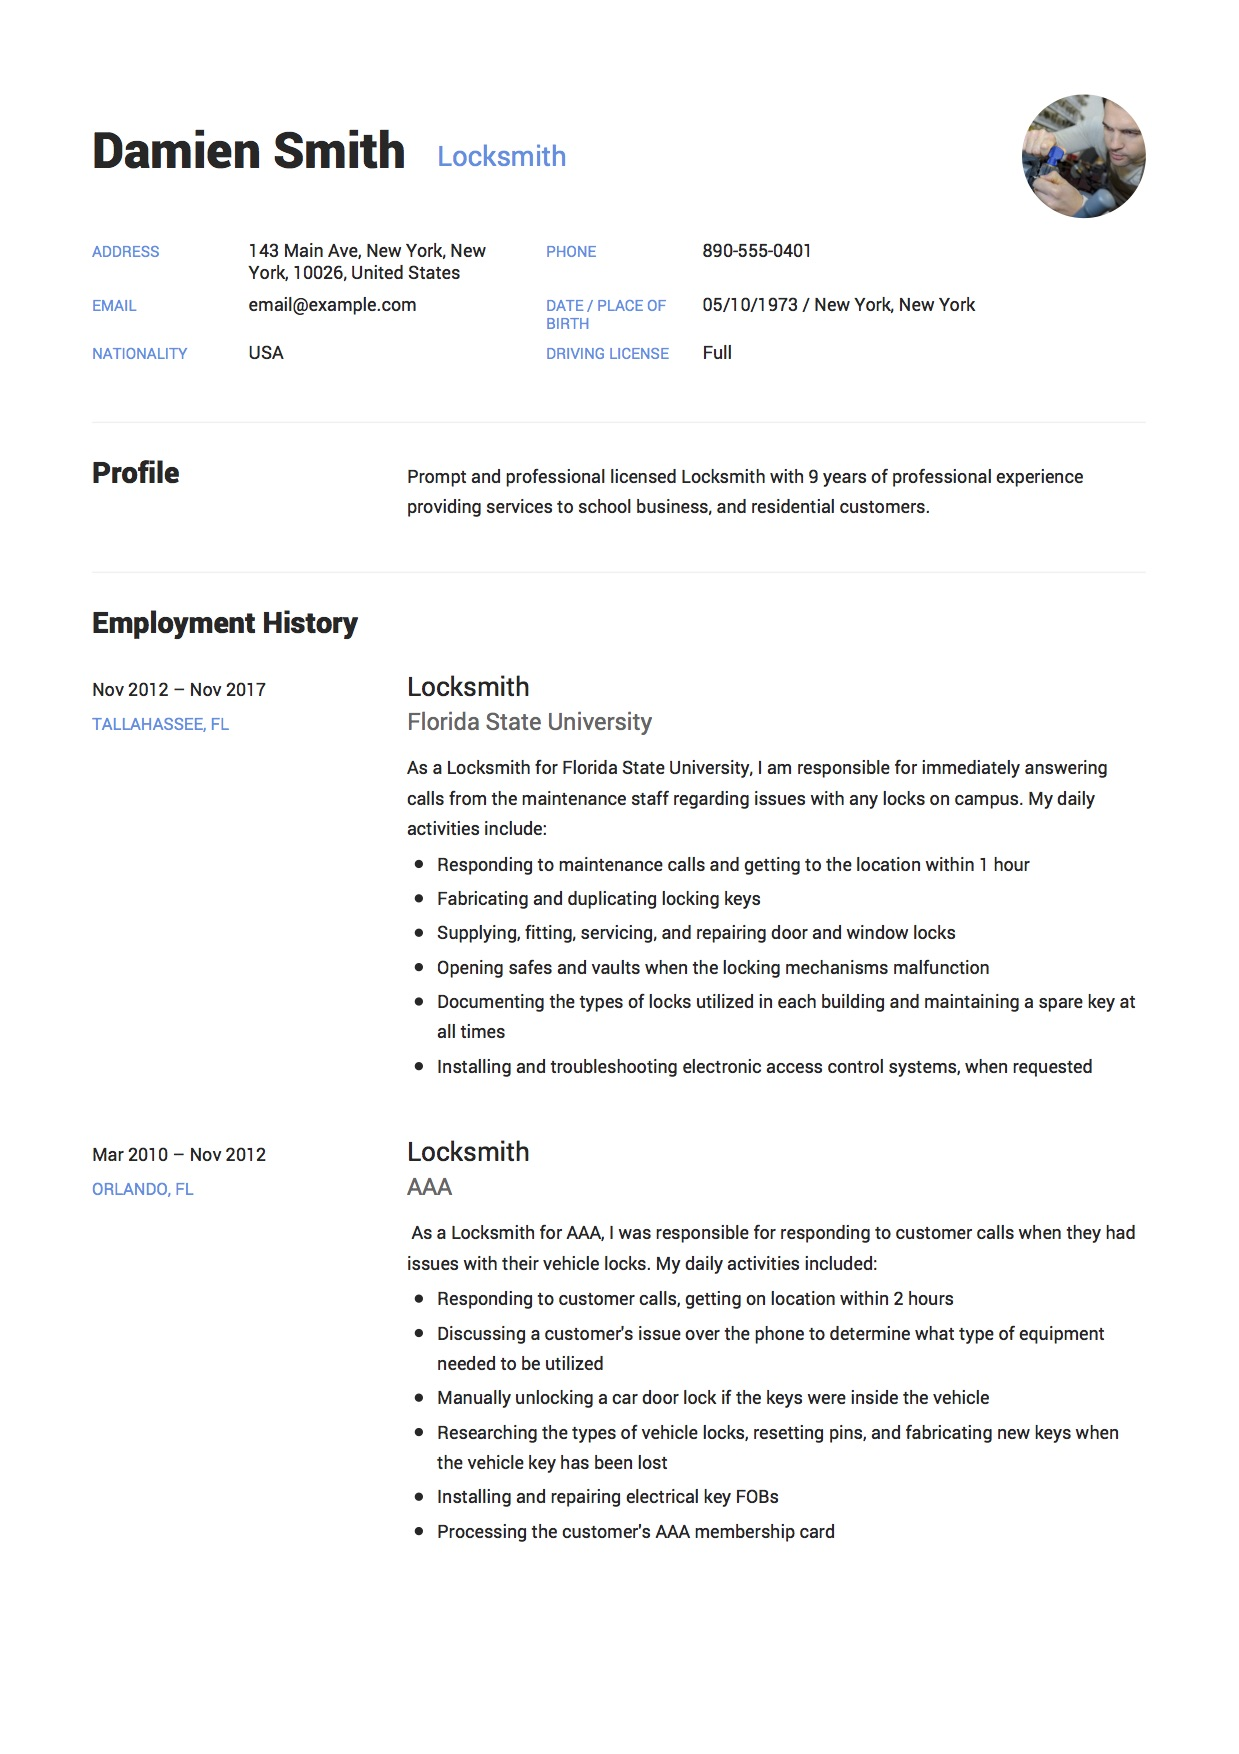 Damien Smith - Resume - Locksmith-11